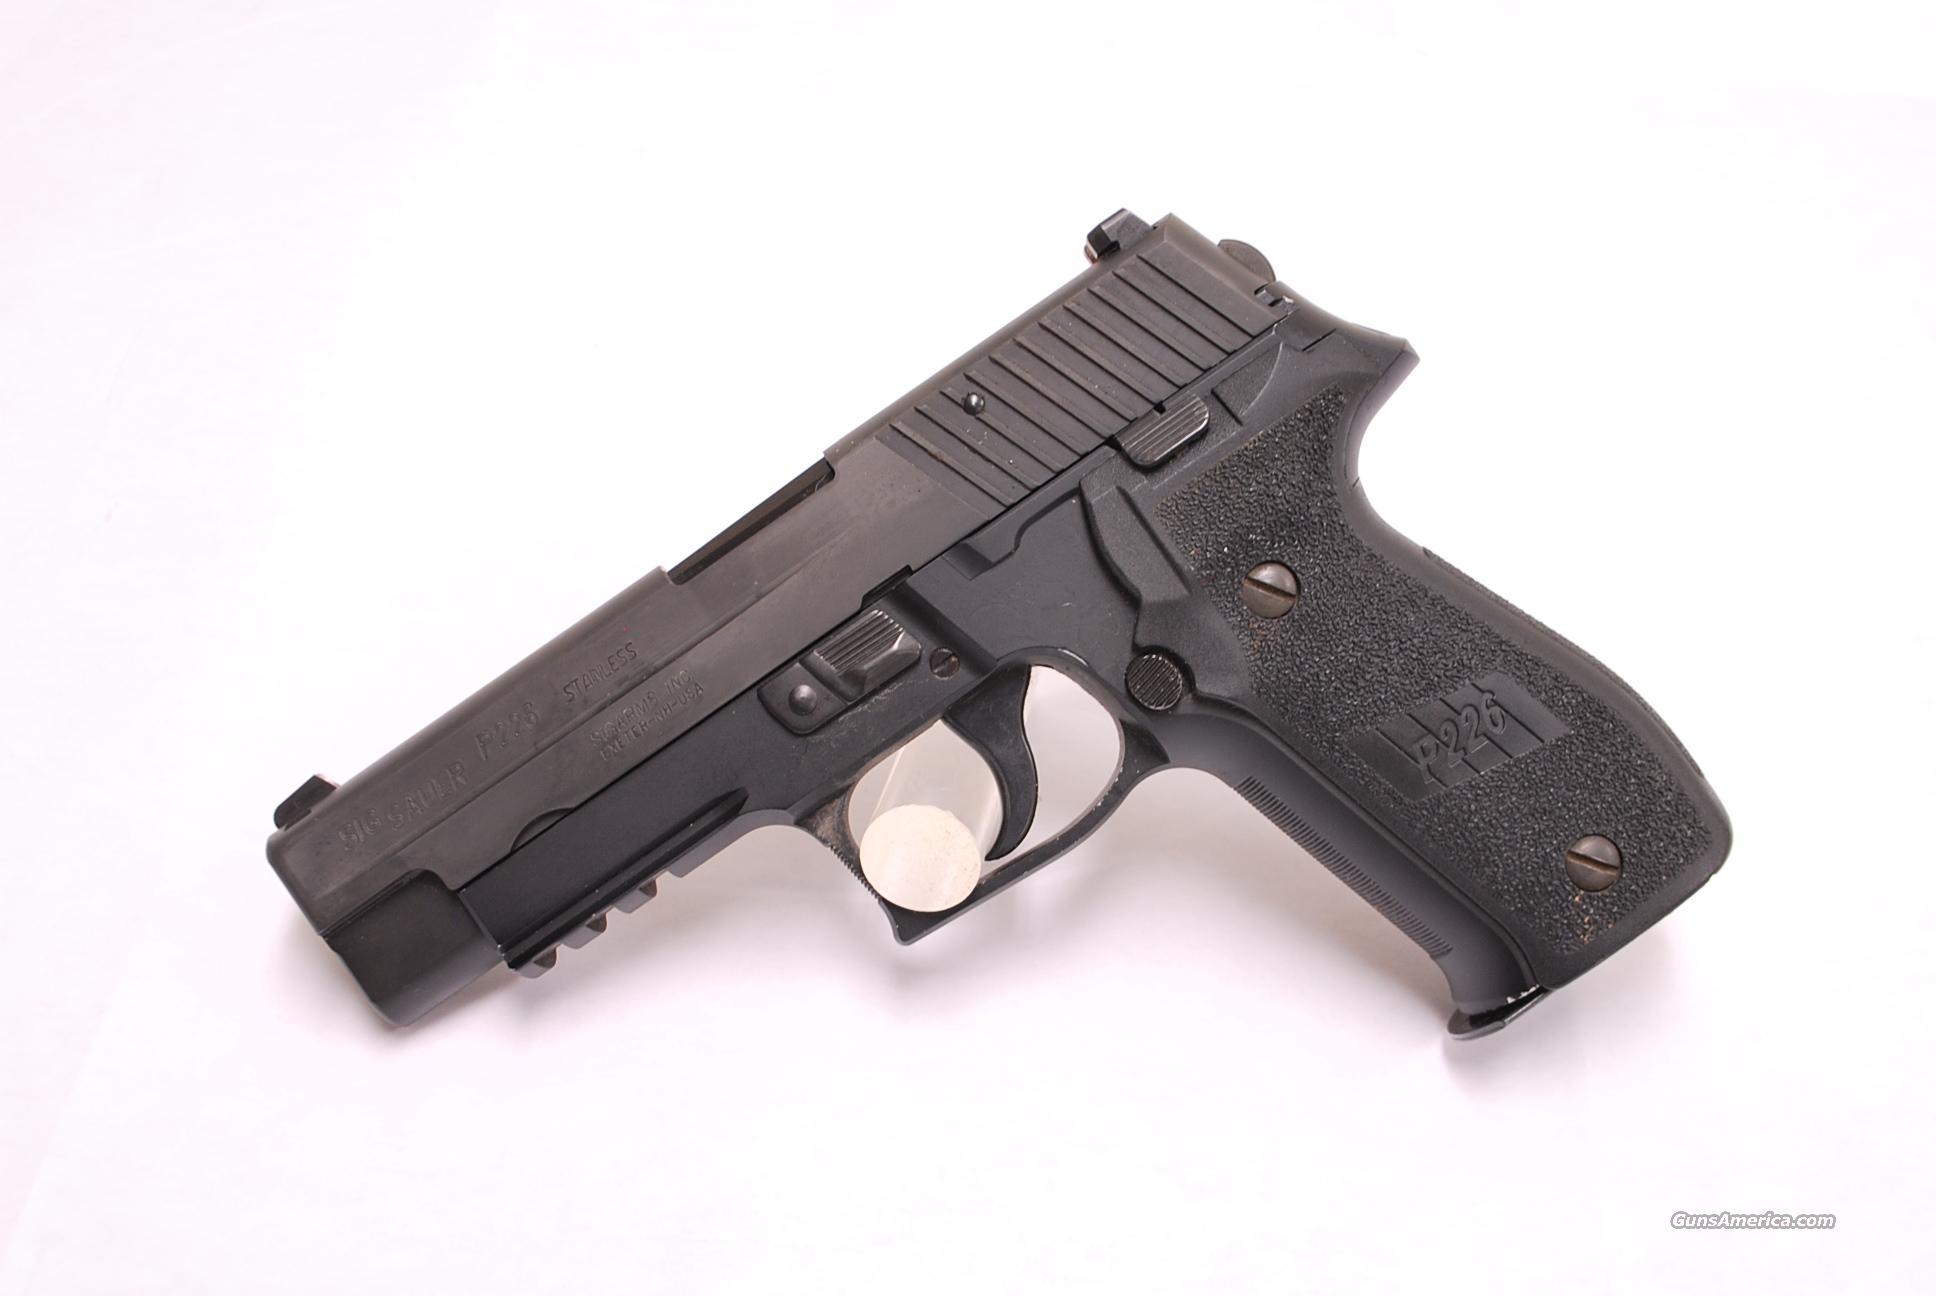 Sig Sauer P226, 40 S&W DAK, USED 40  Guns > Pistols > Sig - Sauer/Sigarms Pistols > P226